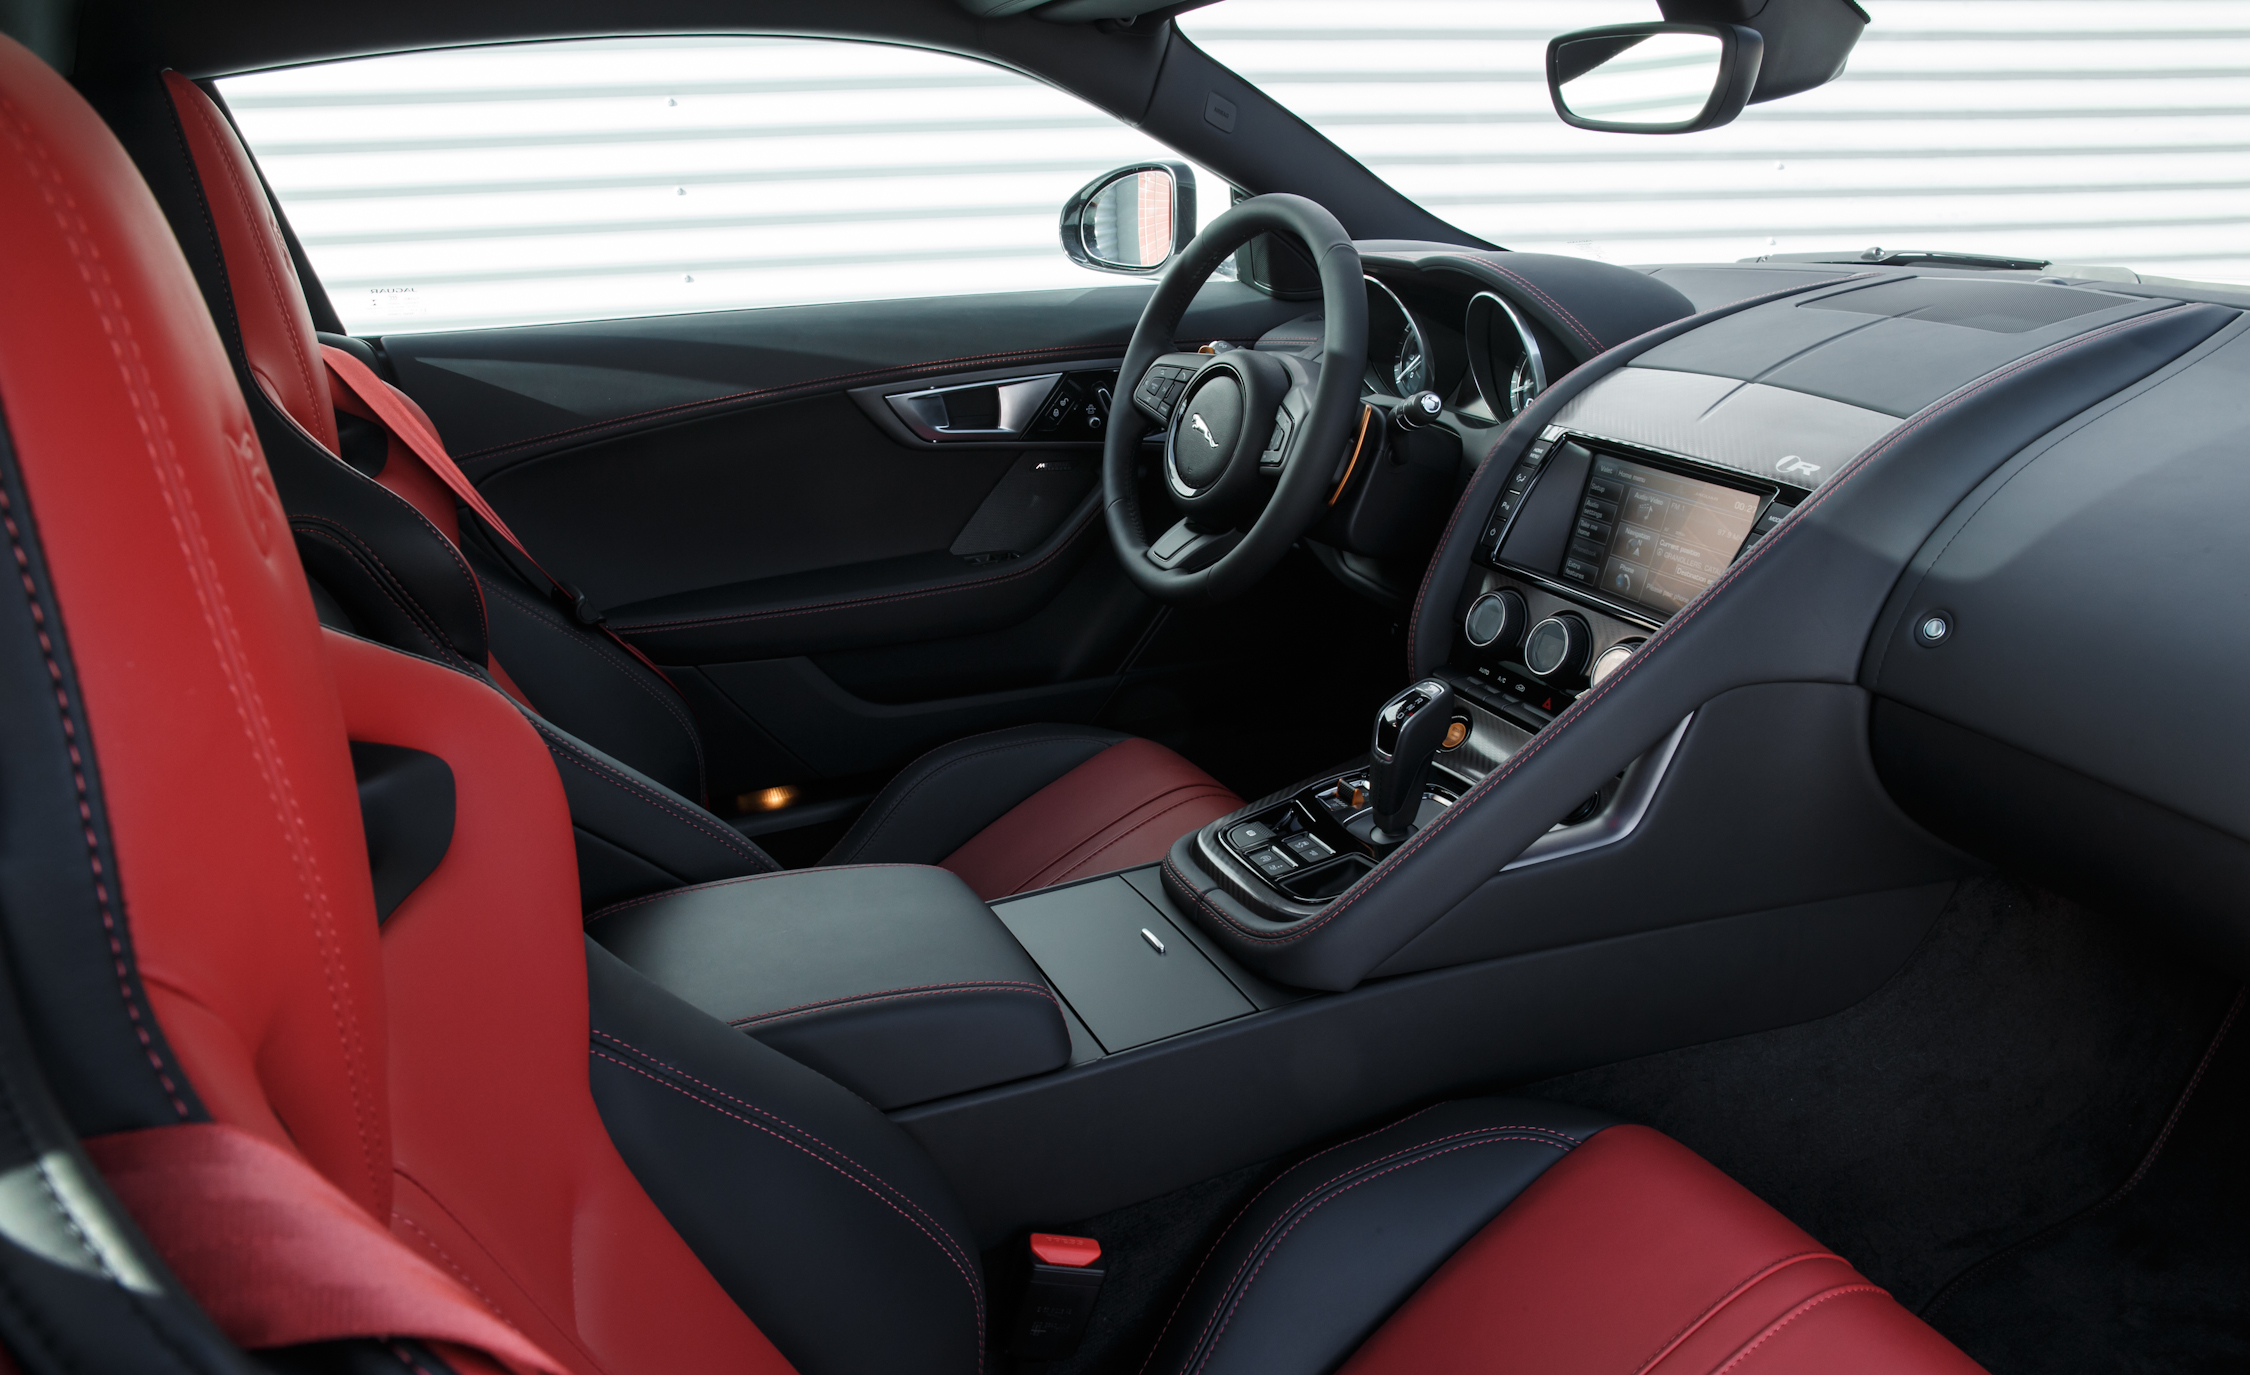 2015 Jaguar F-type R Coupe Interior Dashboard